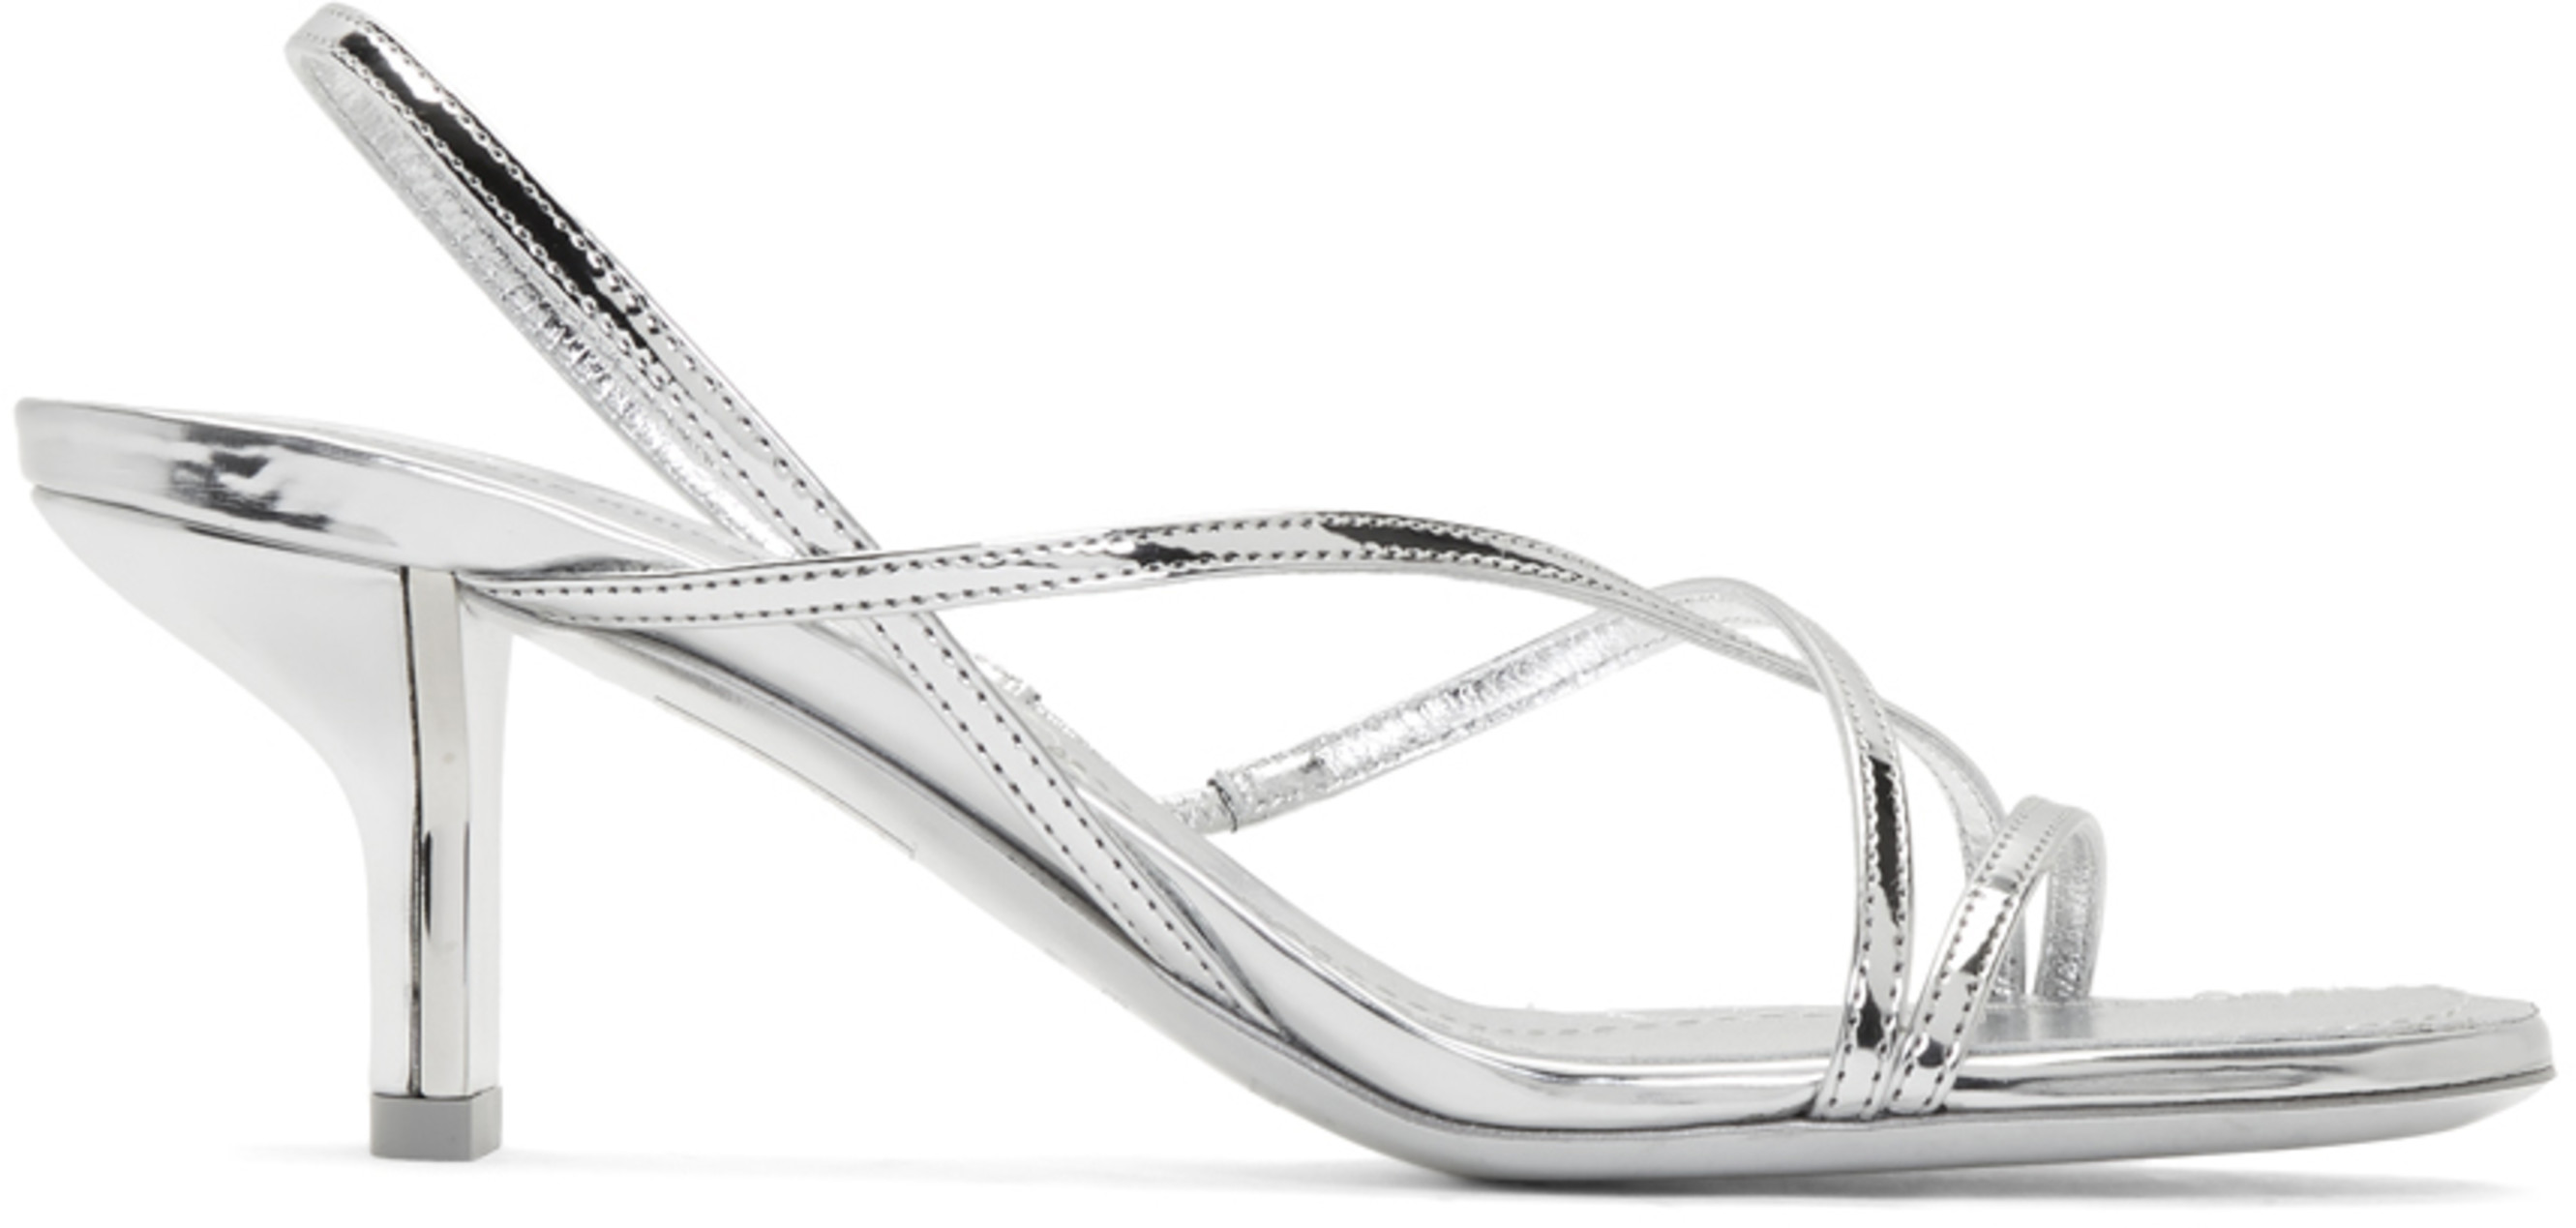 Strappy Silver Leeloo Sandals Sandals Leeloo Strappy Silver SUzVpM